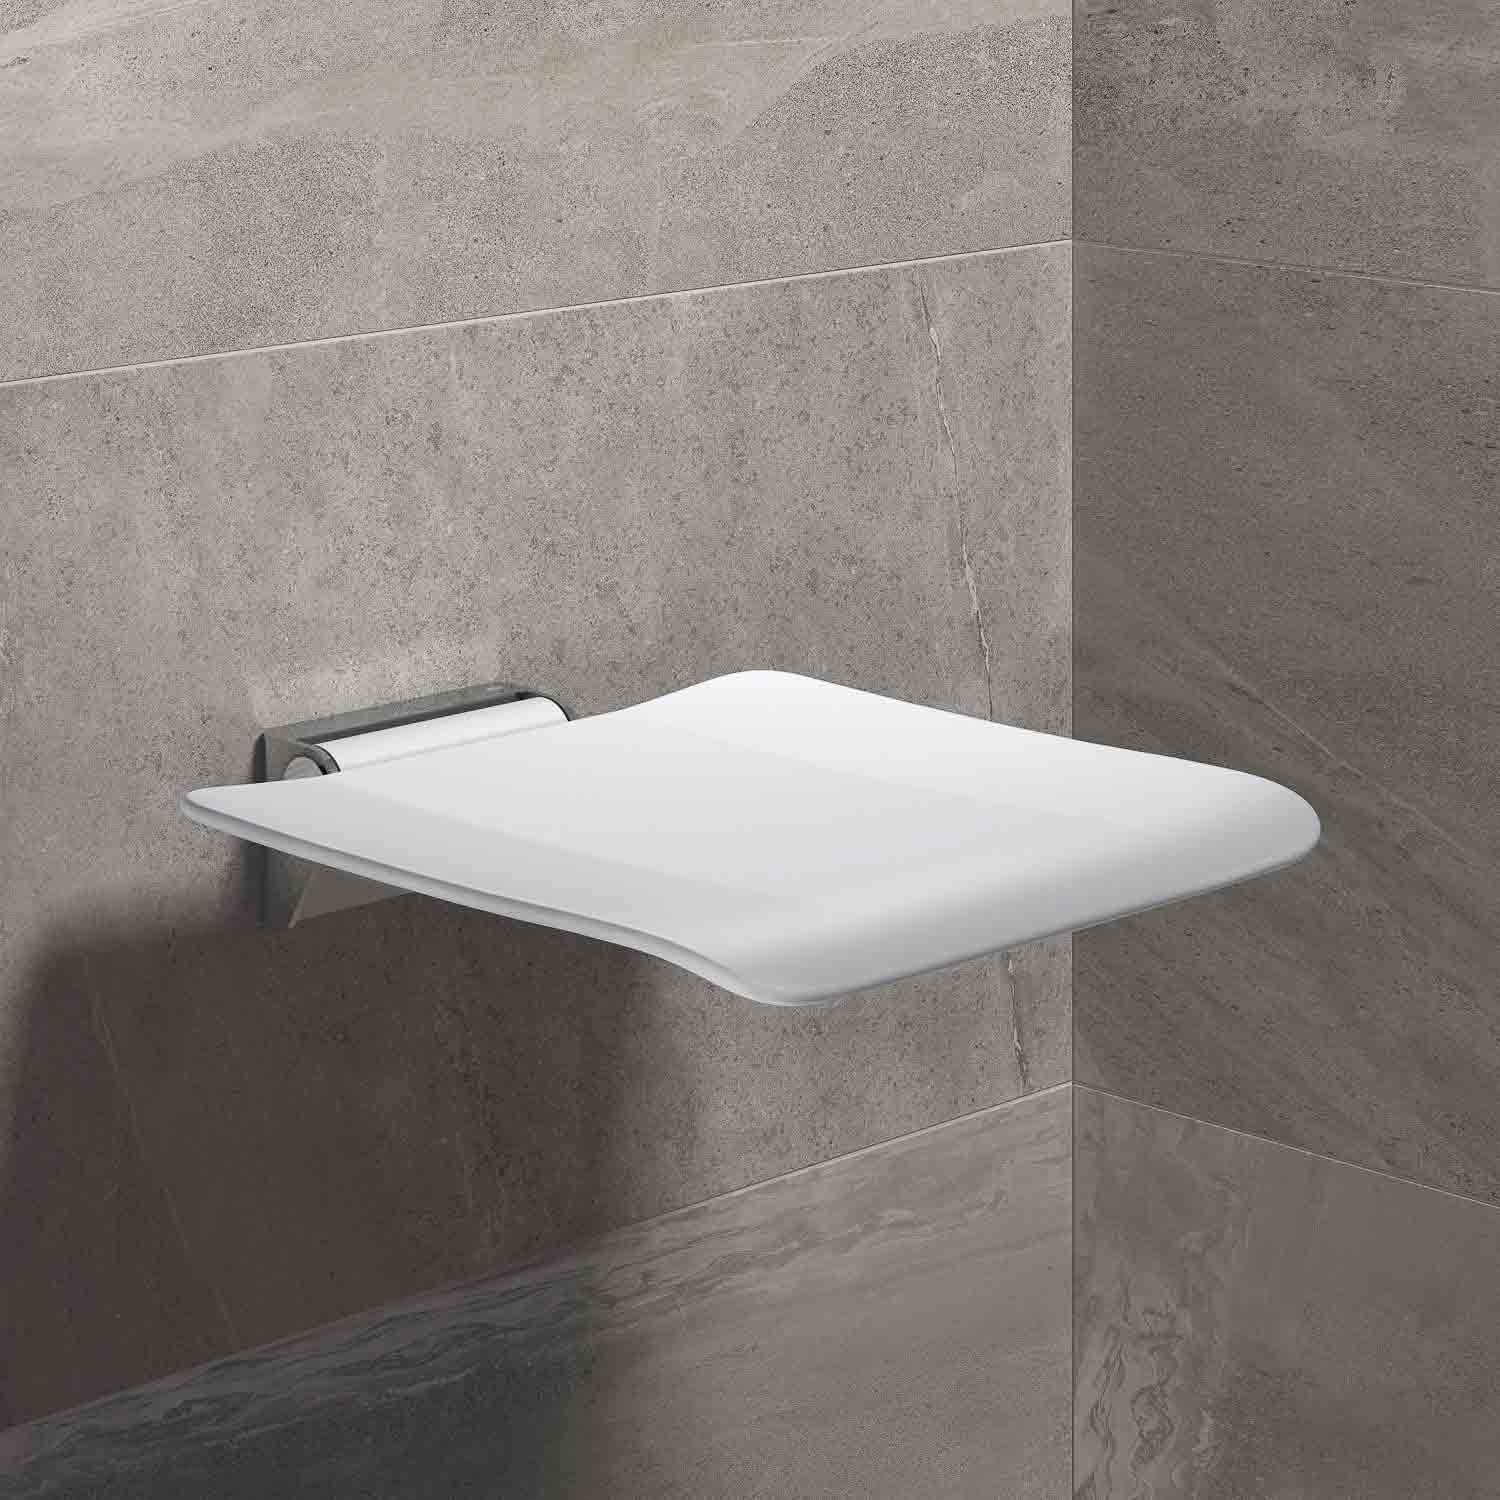 Freestyle Fixed Shower Seat with a white seat and chrome finish bracket lifestyle image